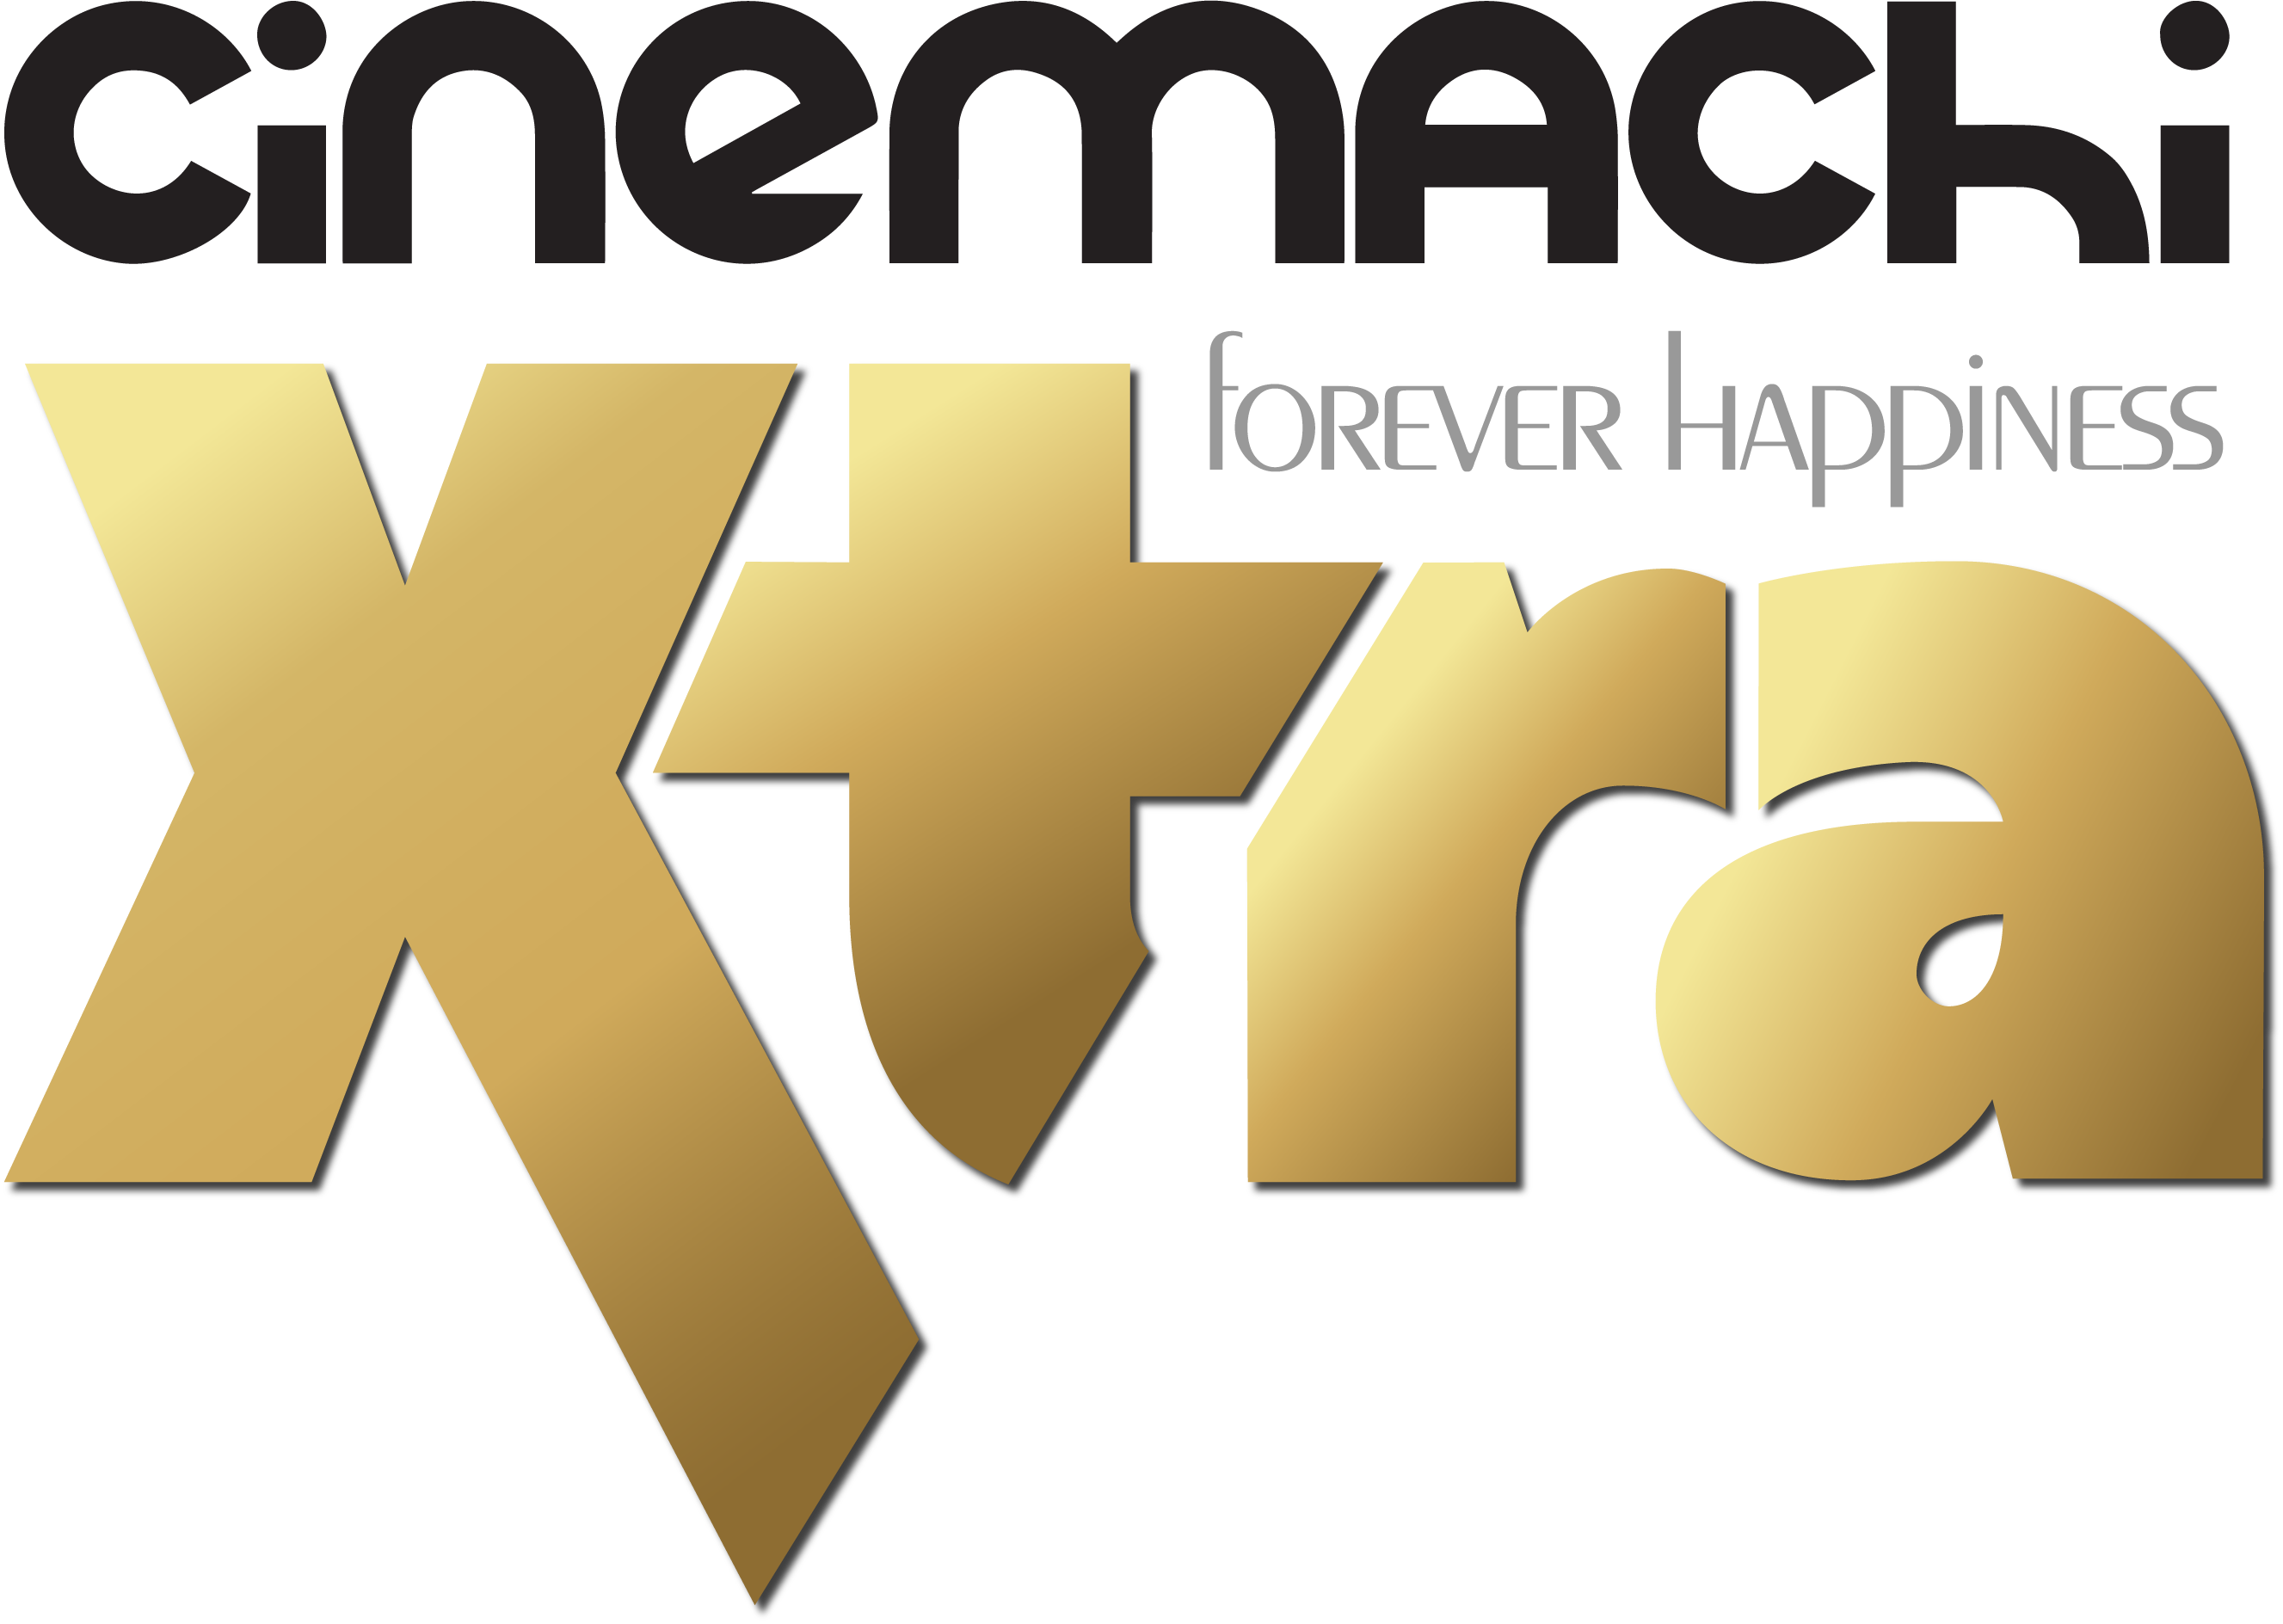 Cinemachi Xtra logo